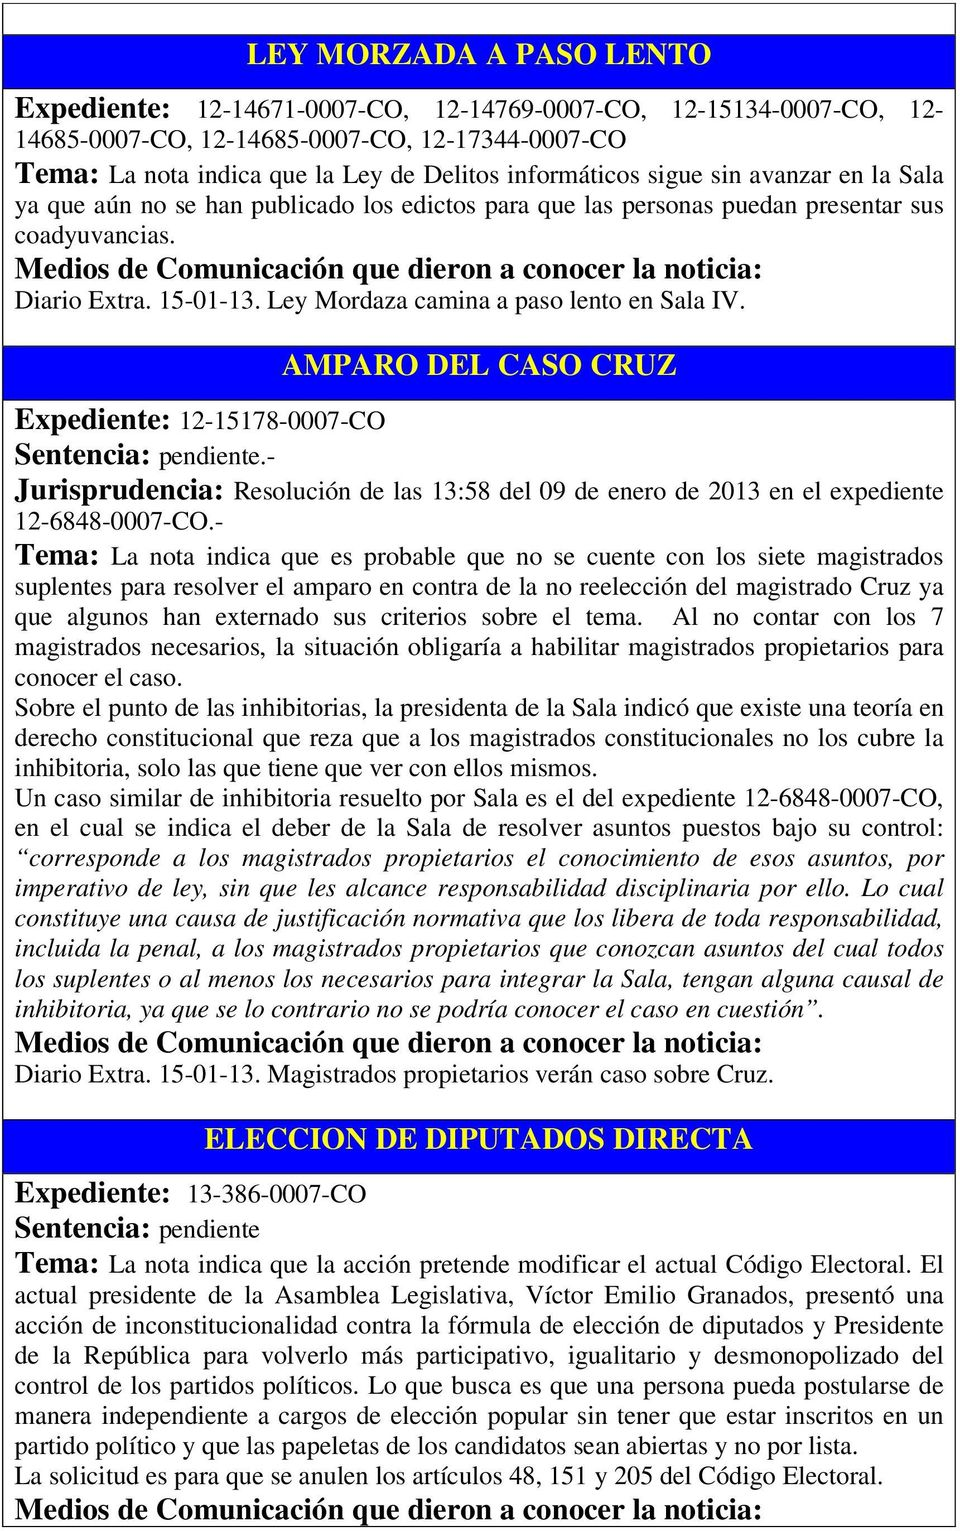 AMPARO DEL CASO CRUZ Expediente: 12-15178-0007-CO.- Jurisprudencia: Resolución de las 13:58 del 09 de enero de 2013 en el expediente 12-6848-0007-CO.